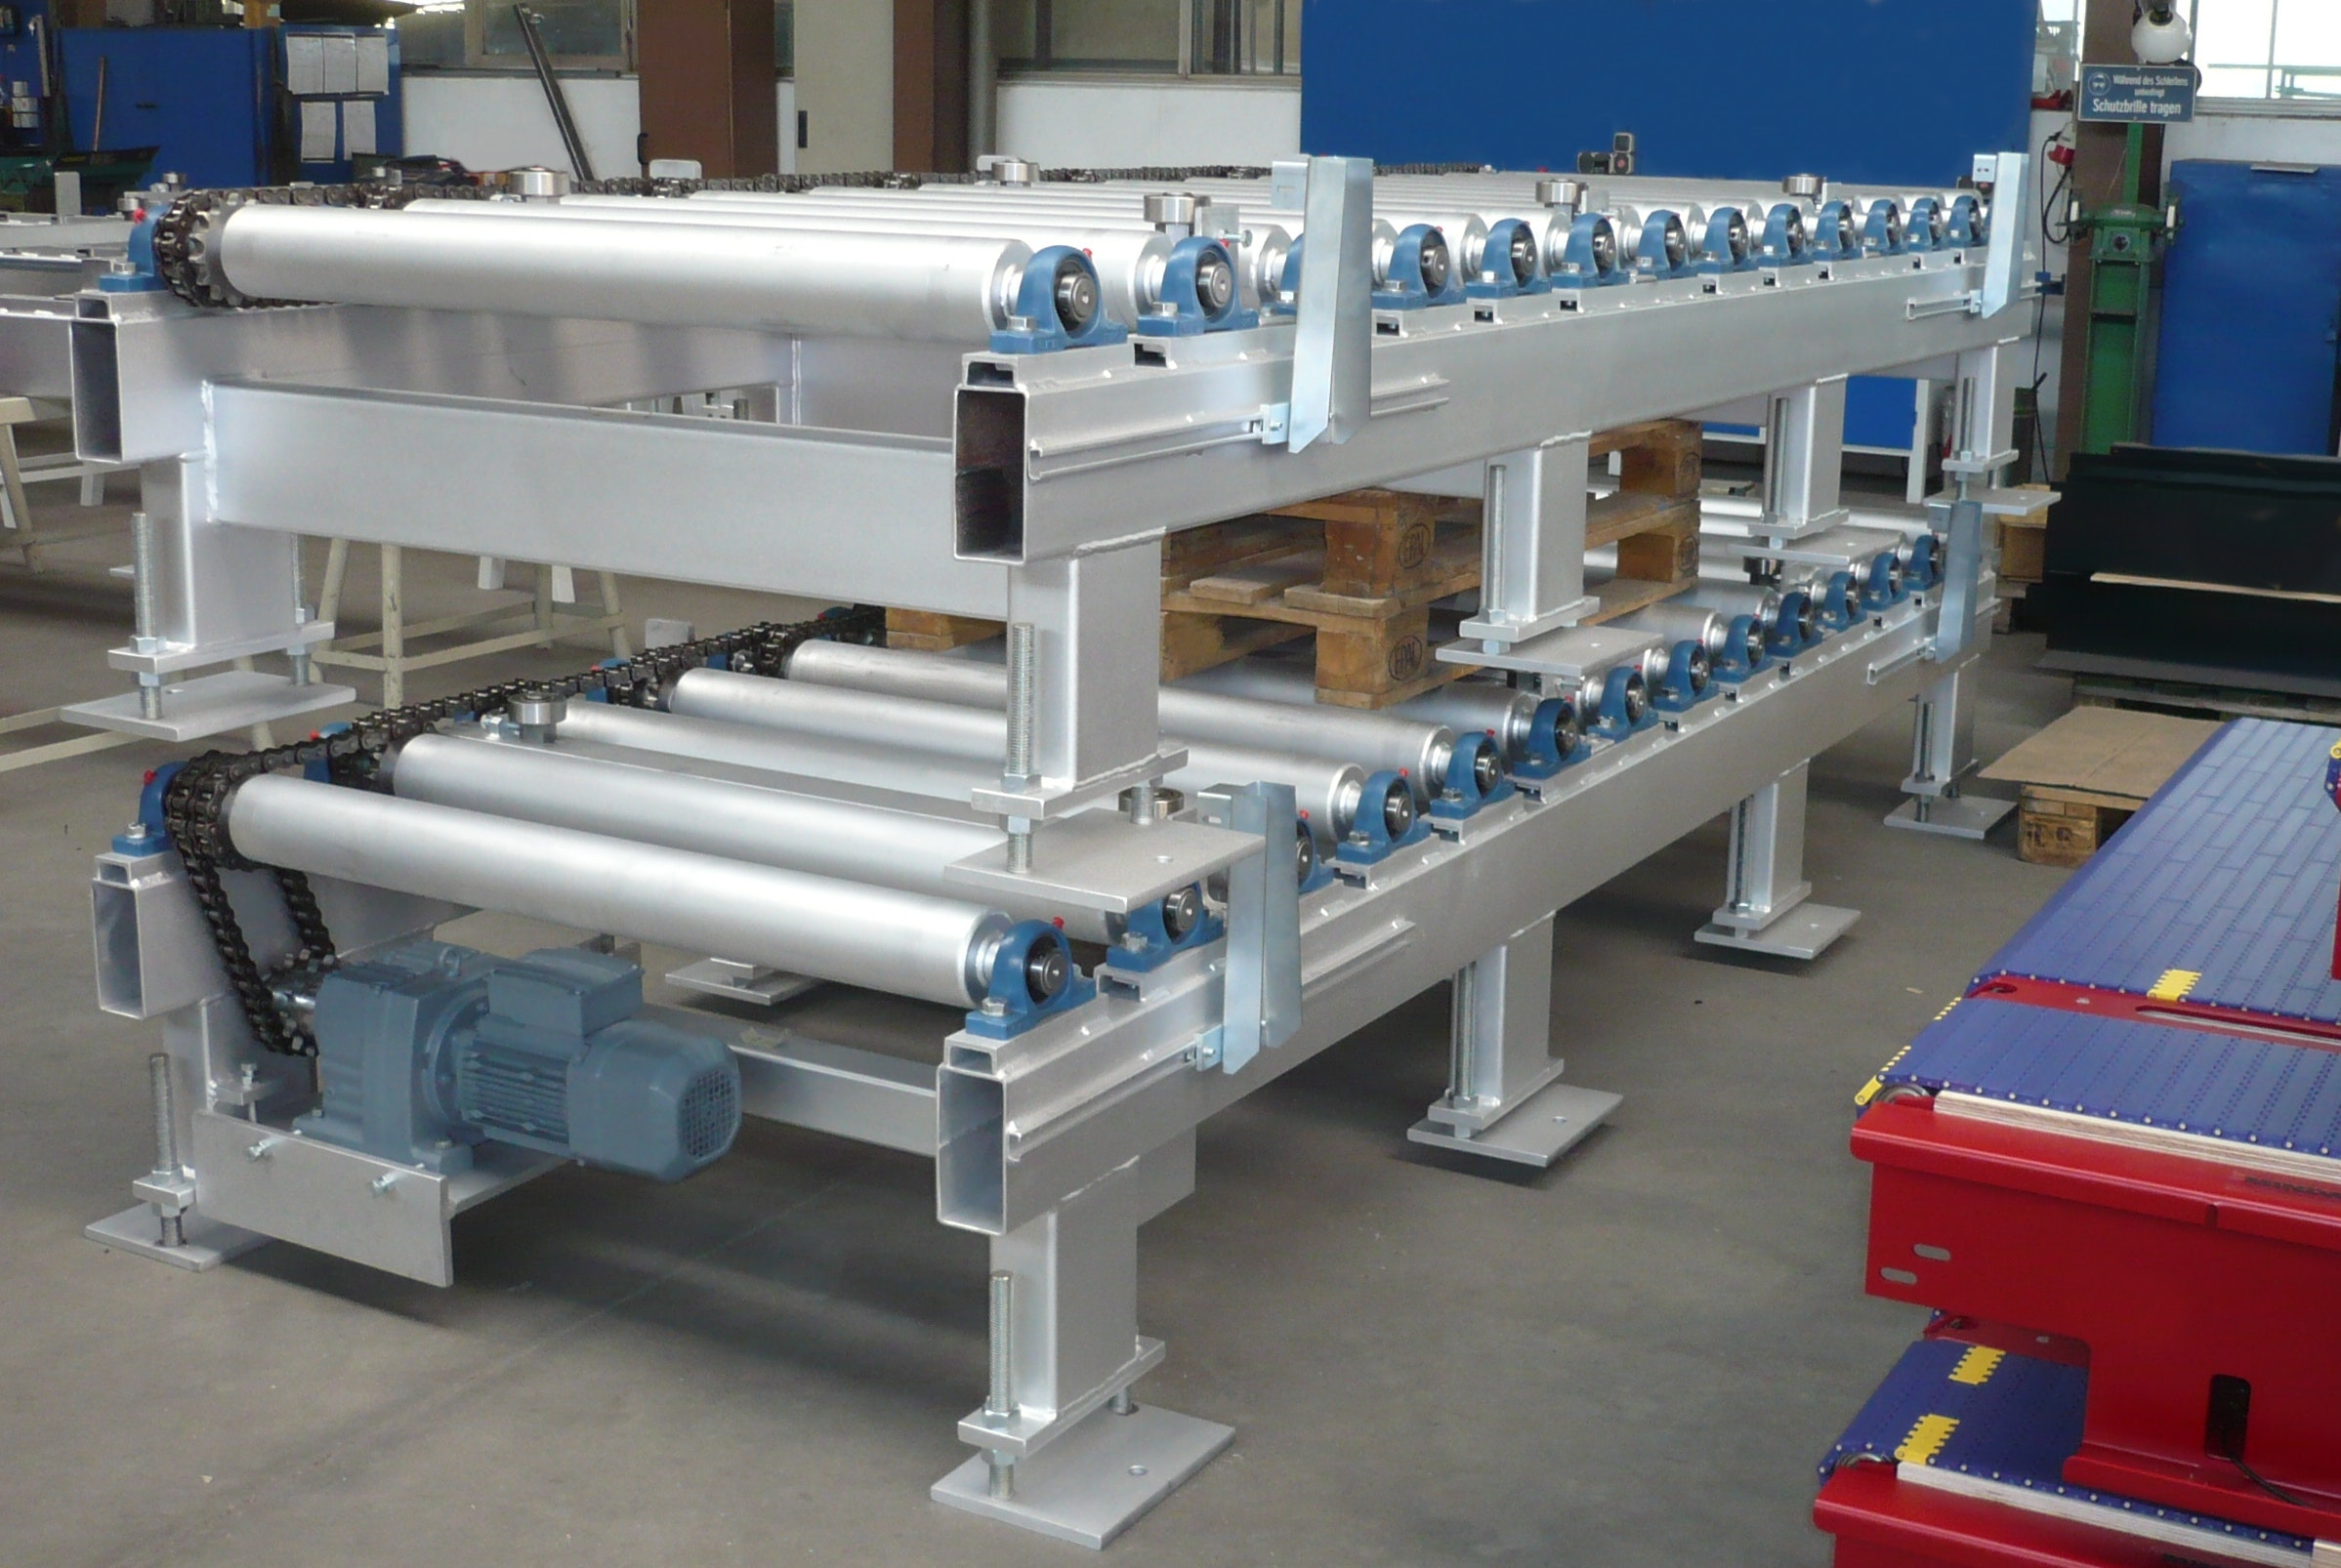 Galvanised roller conveyor for transport of fibre-cement plates